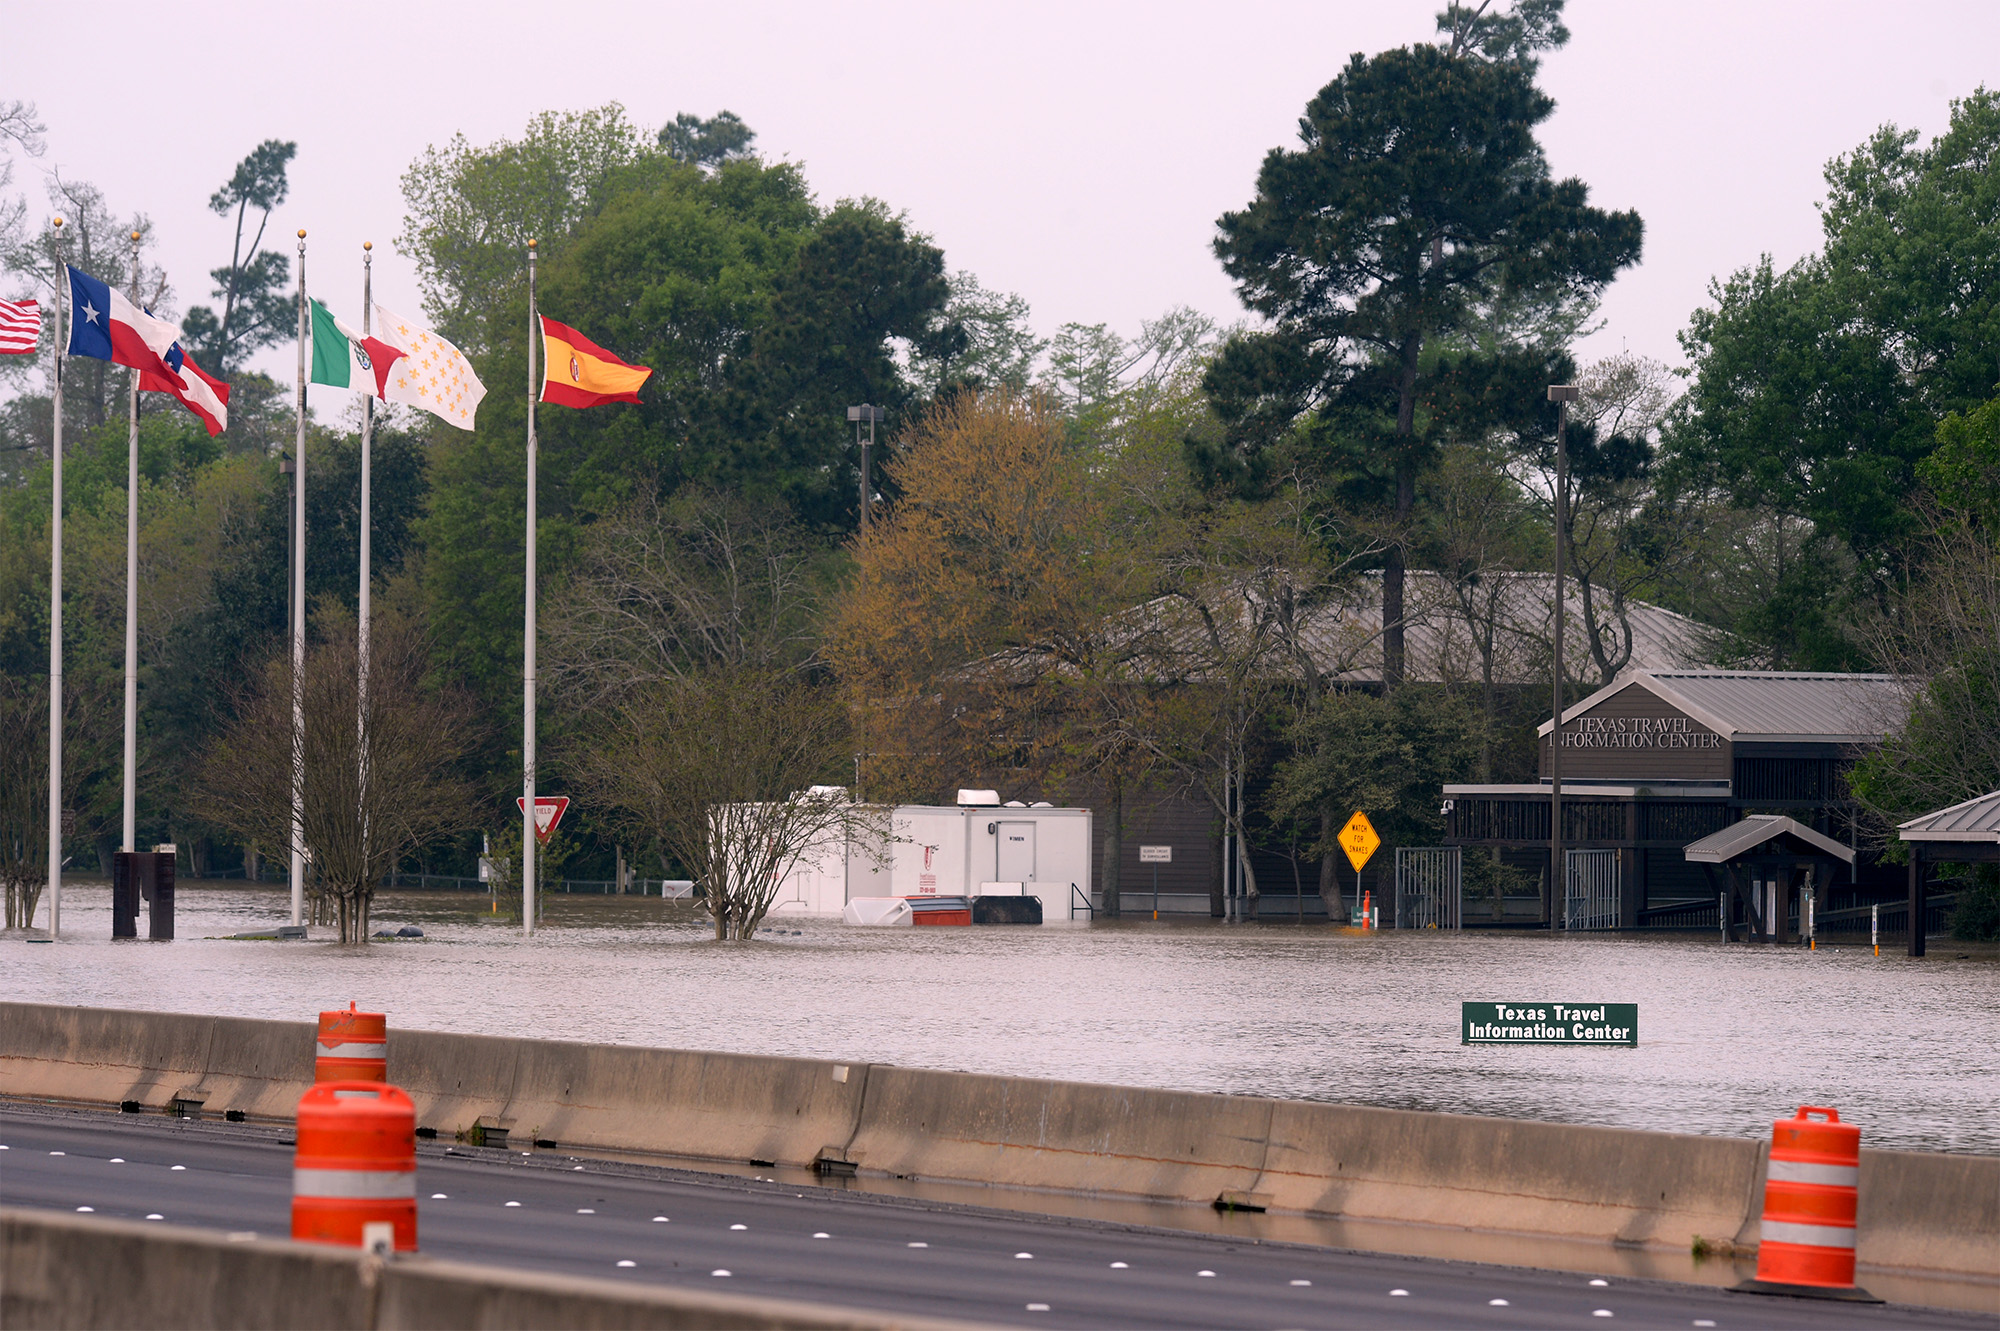 Update: I-10 at Texas-Louisiana state line closed